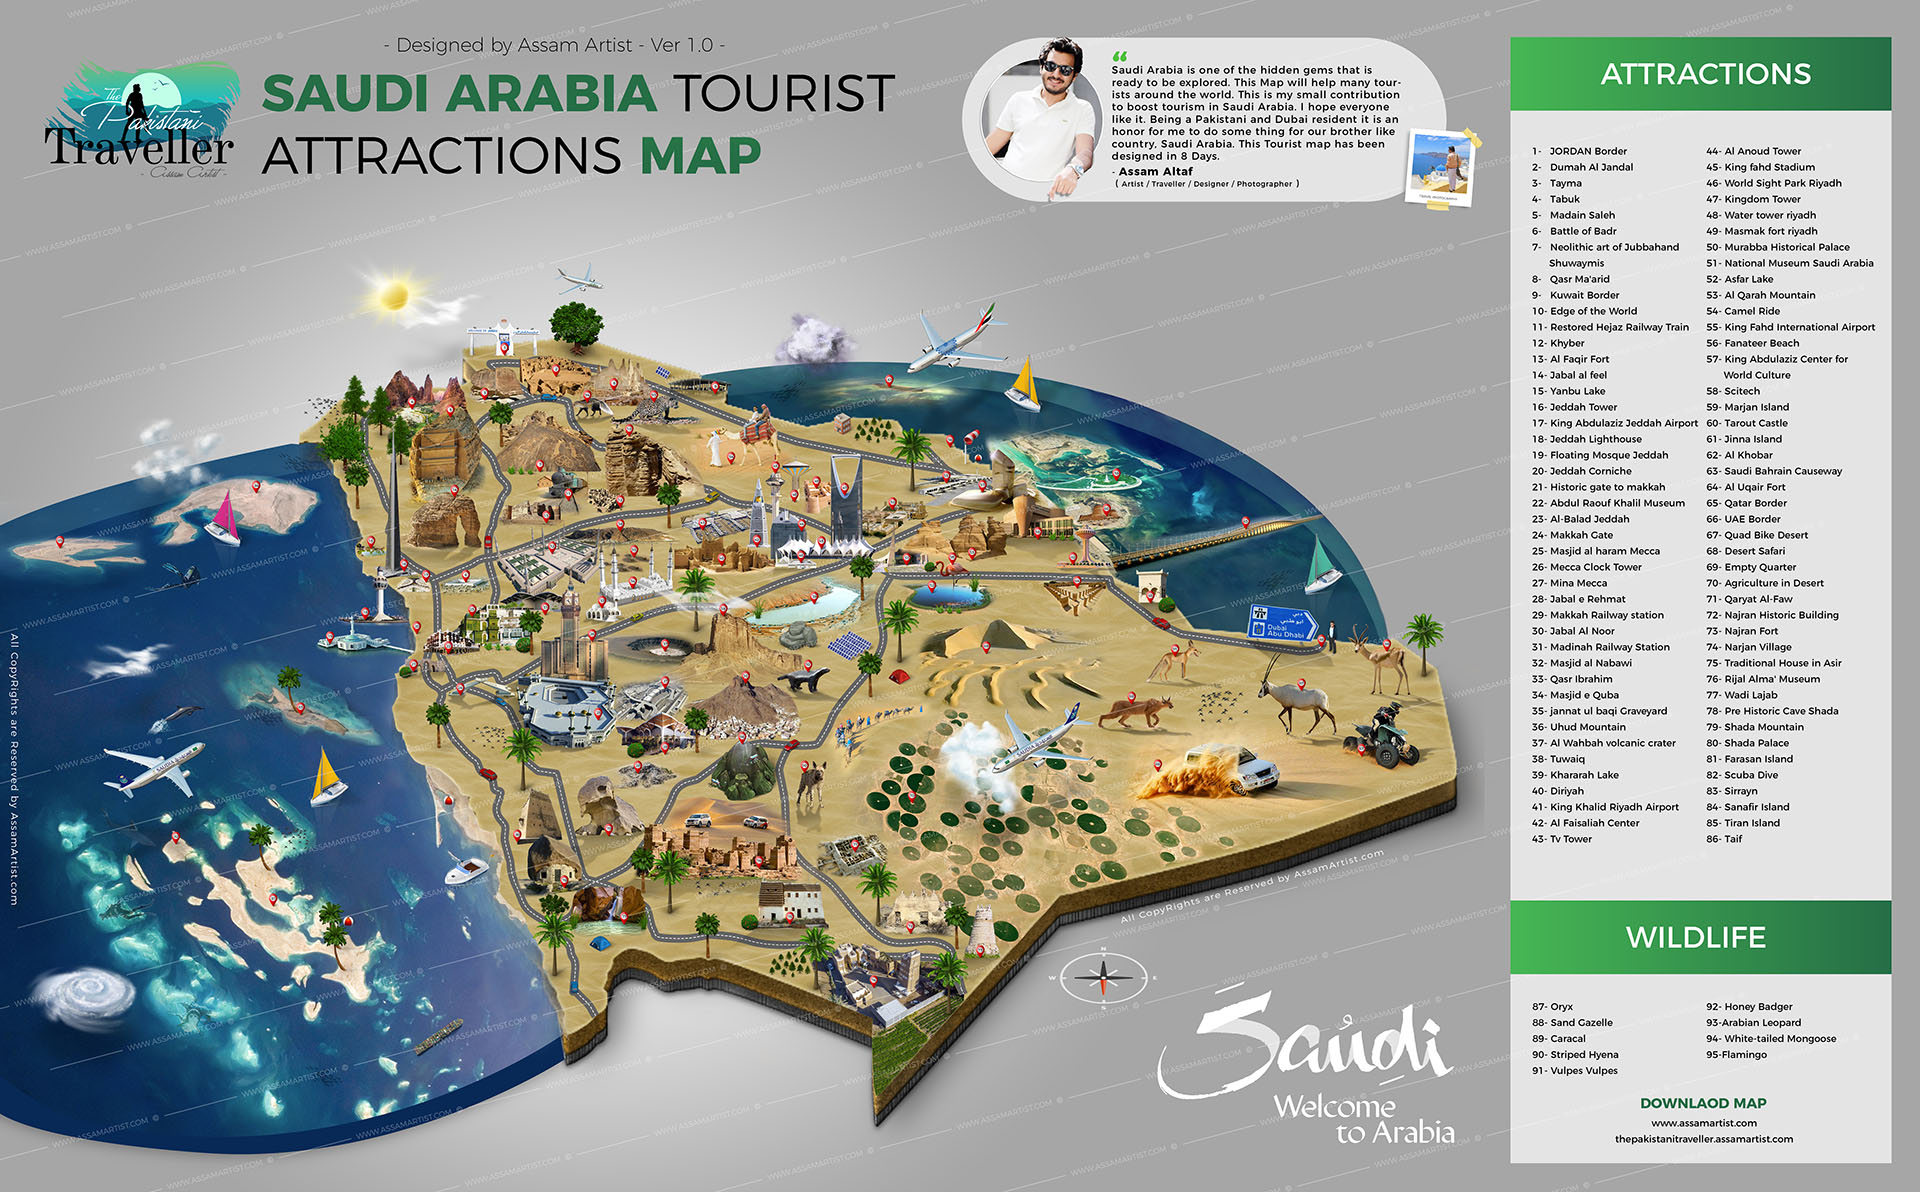 Saudi Arabia Tourist attractions map